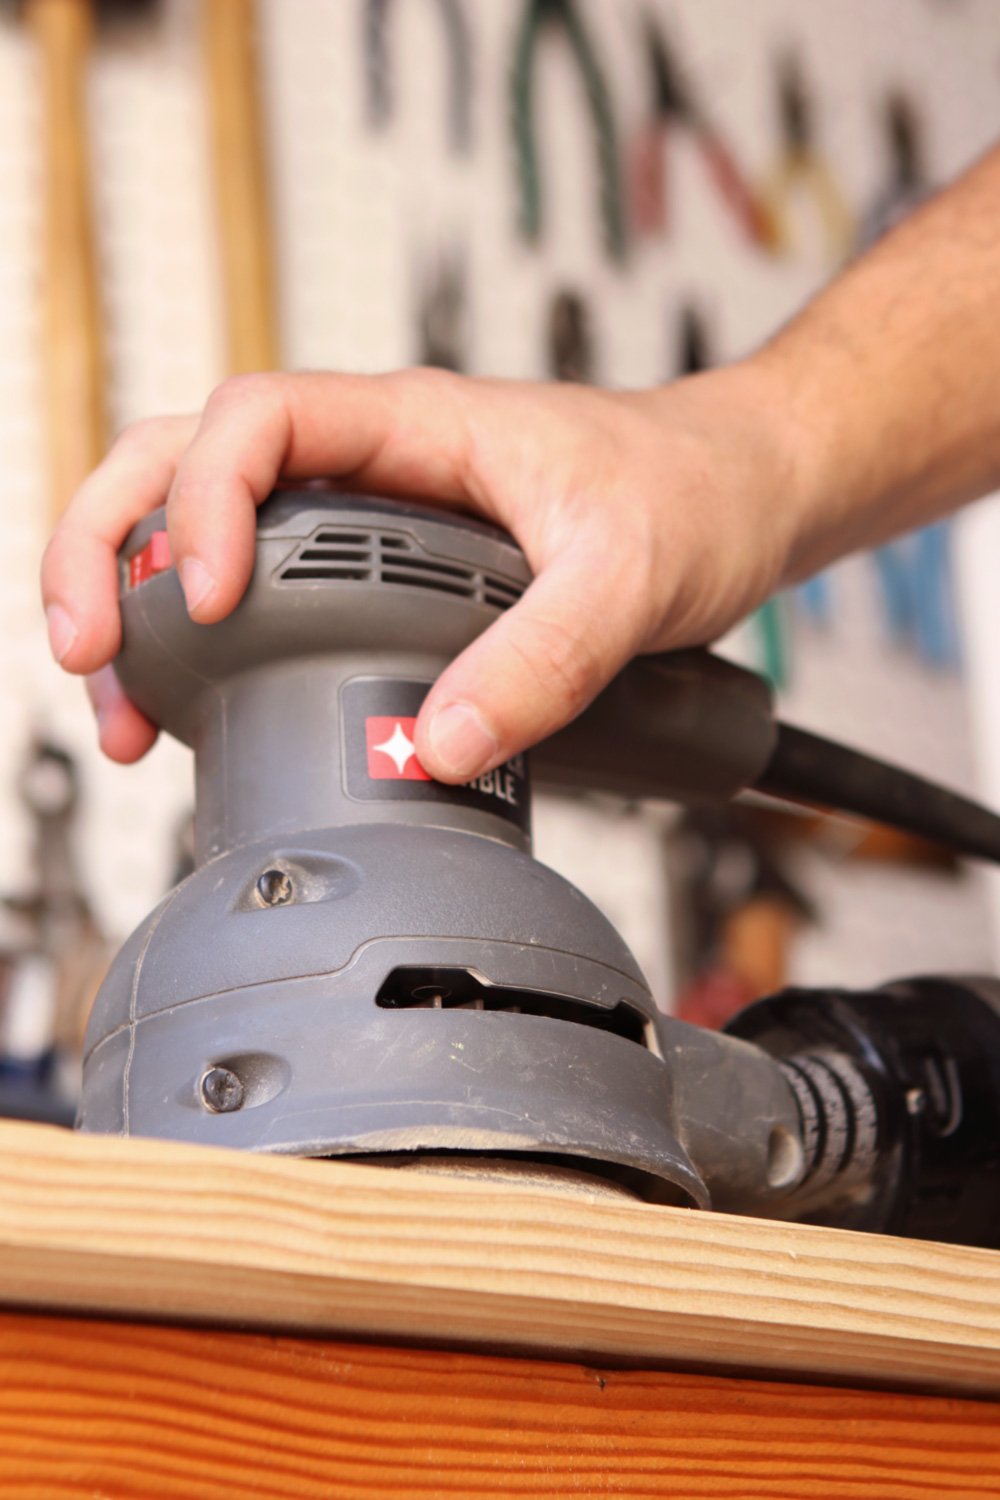 Random orbit sander mistakes - common errors and solutions